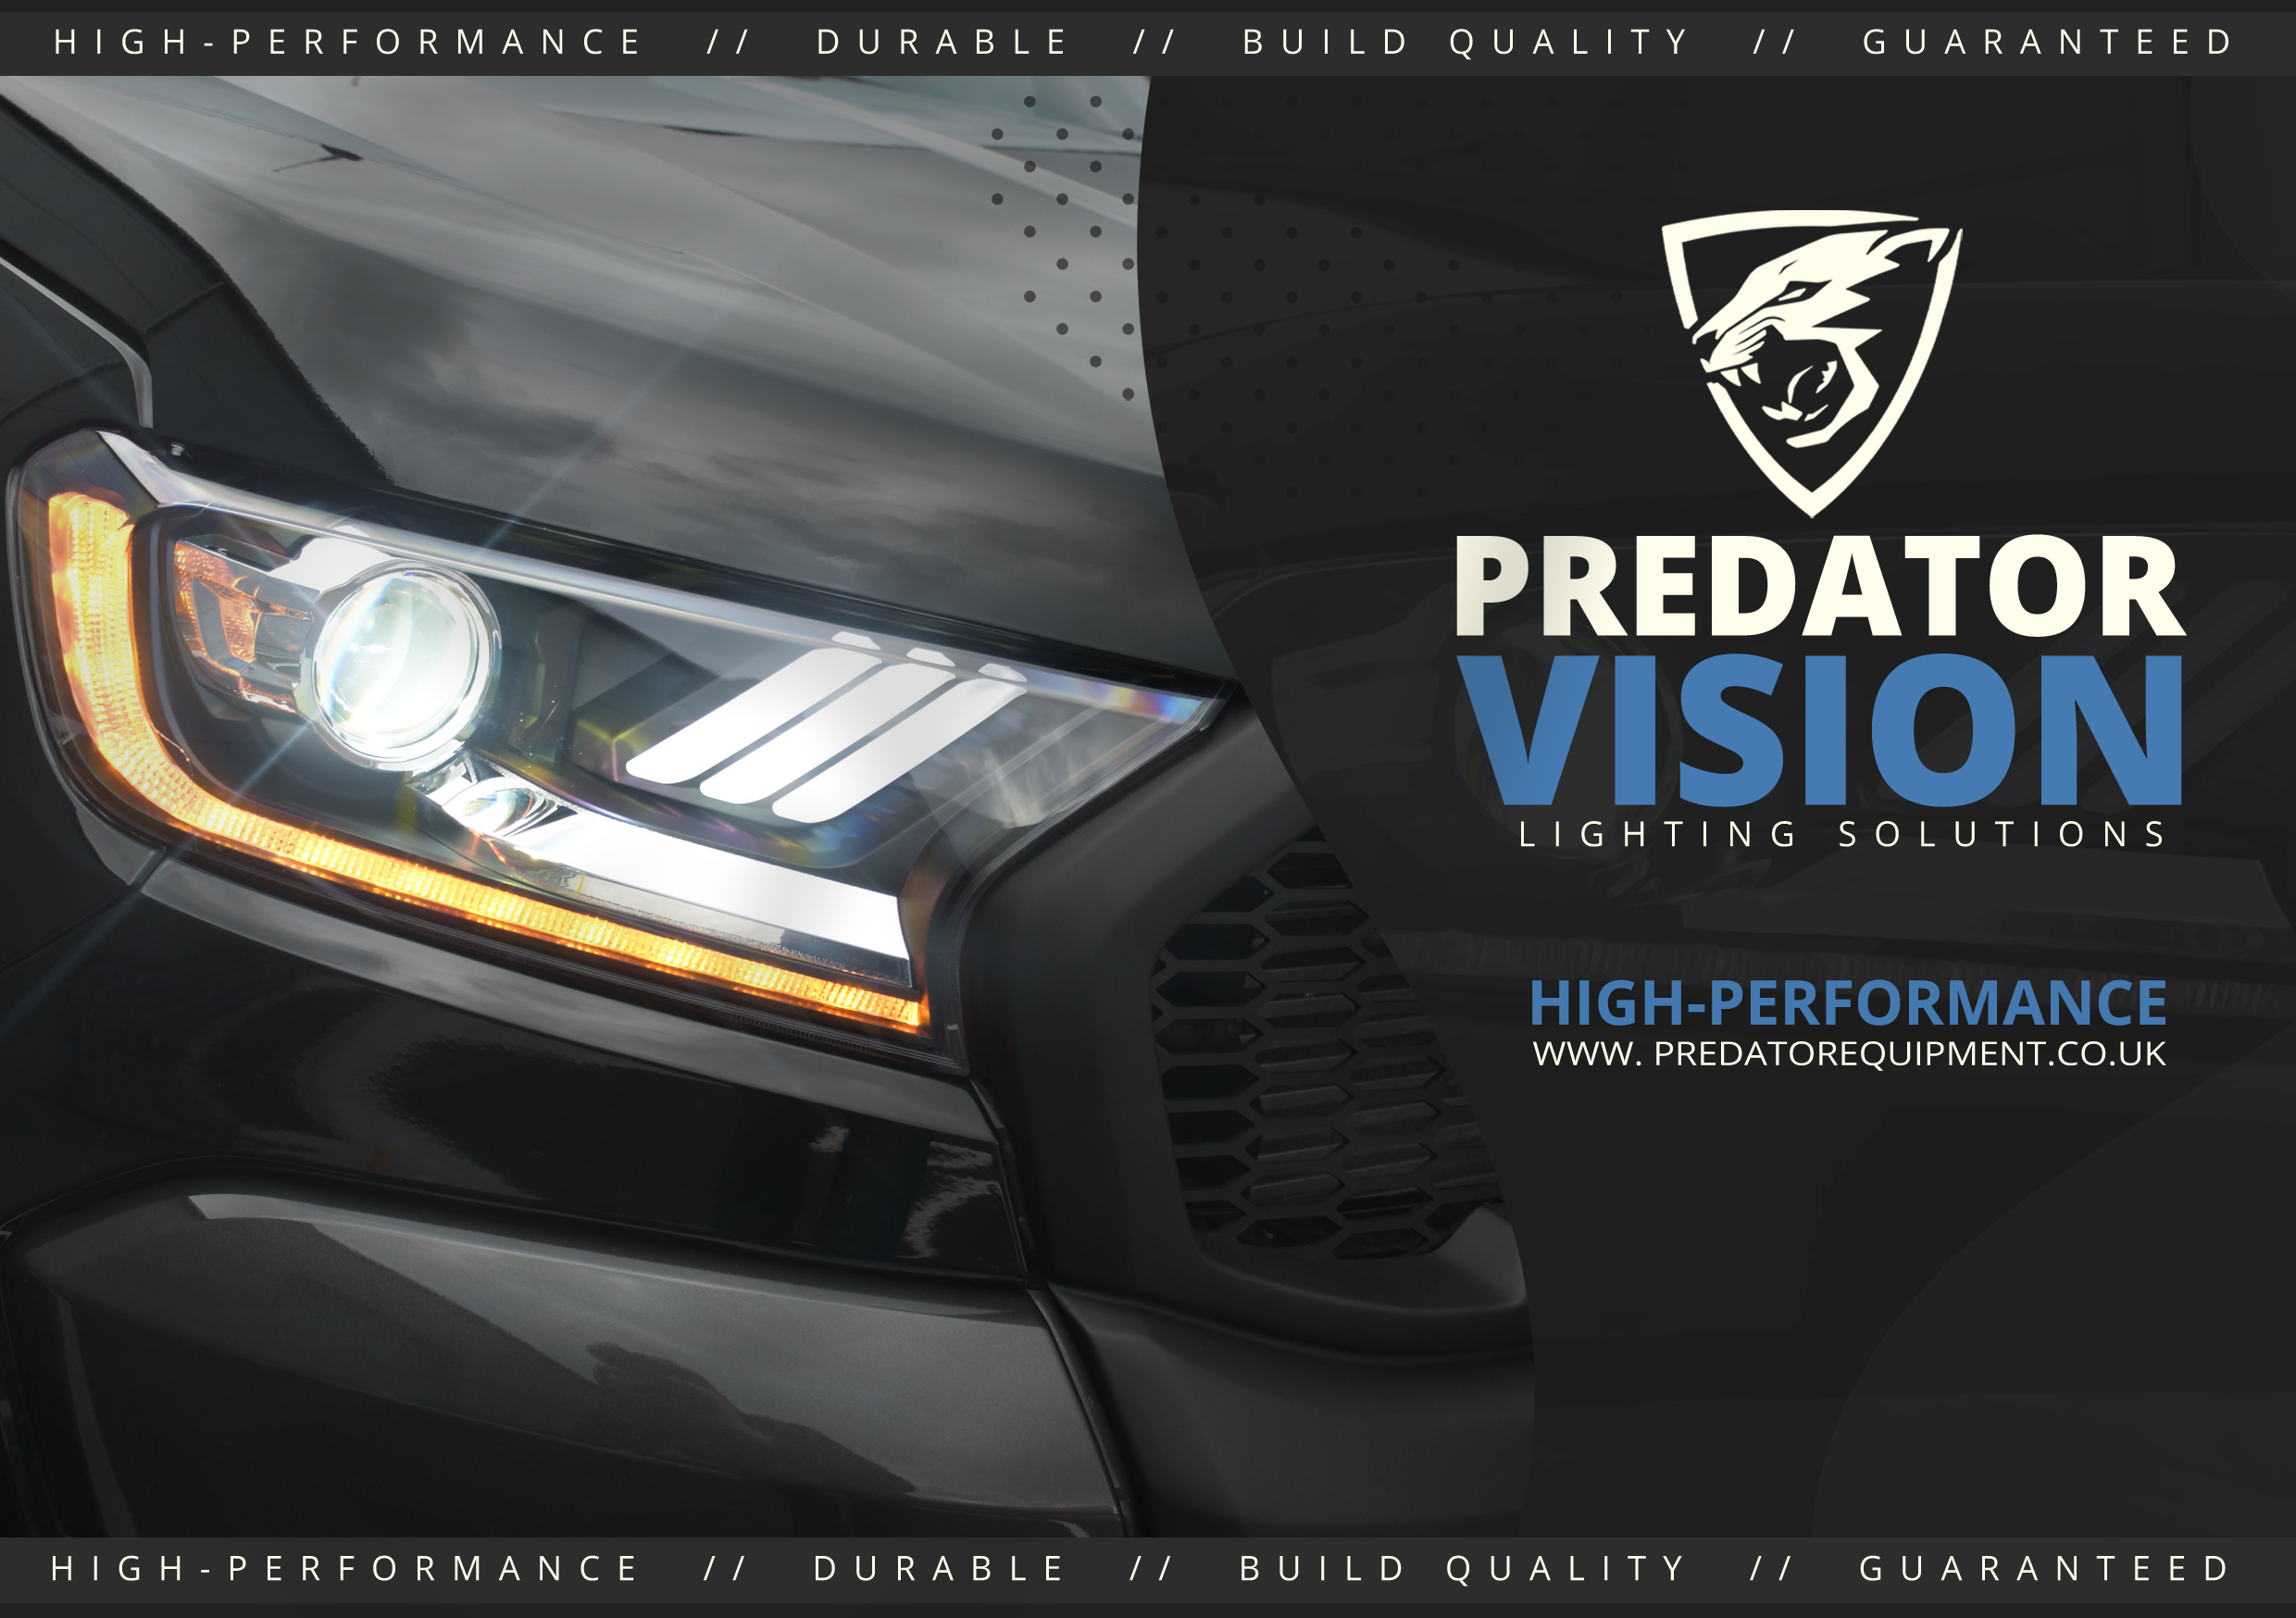 Predator Vision - Brochure Download